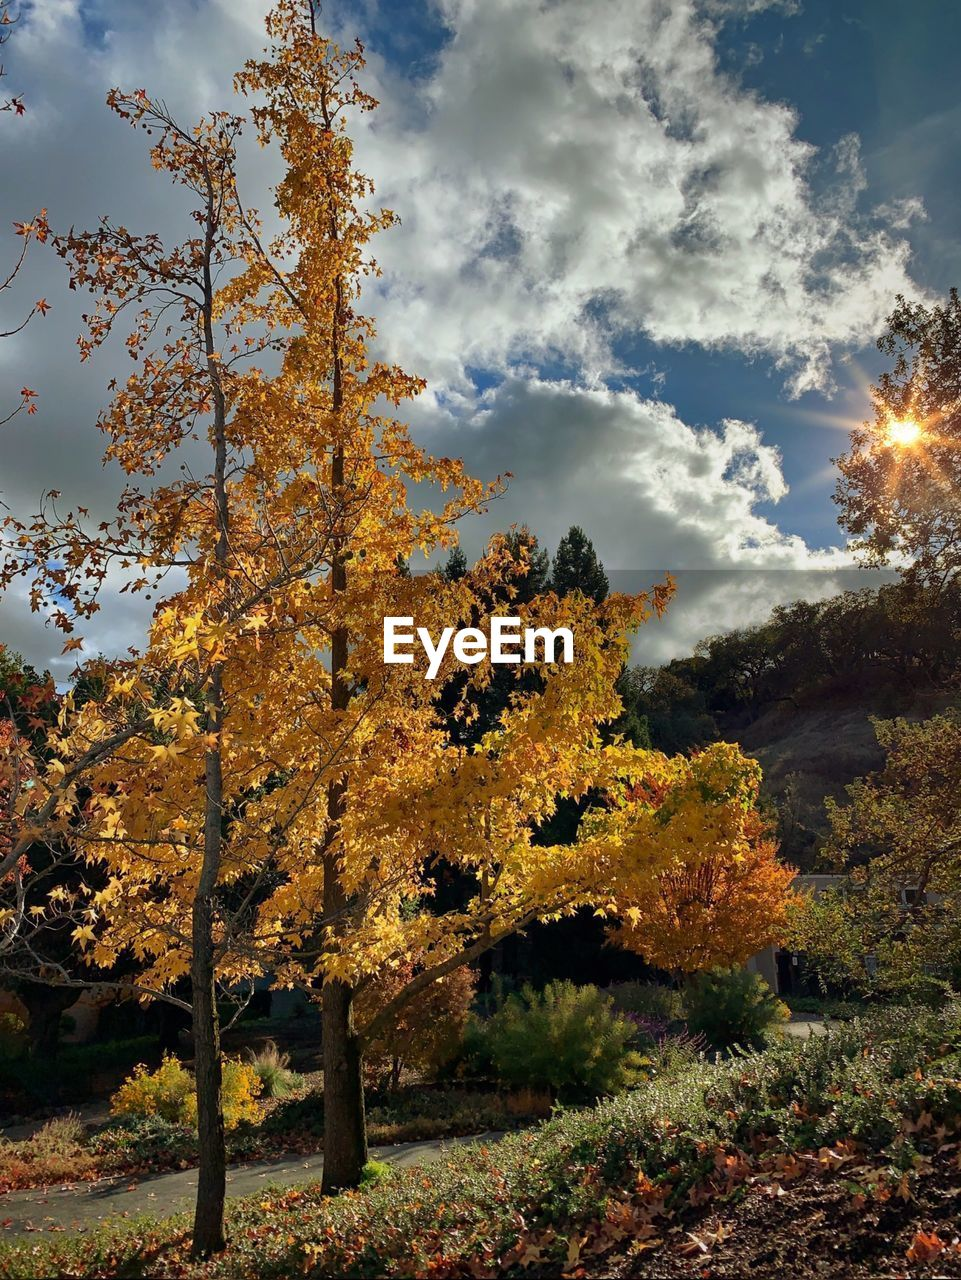 tree, sky, plant, autumn, change, cloud - sky, beauty in nature, nature, growth, tranquility, tranquil scene, no people, sunlight, orange color, scenics - nature, outdoors, day, land, leaf, non-urban scene, fall, natural condition